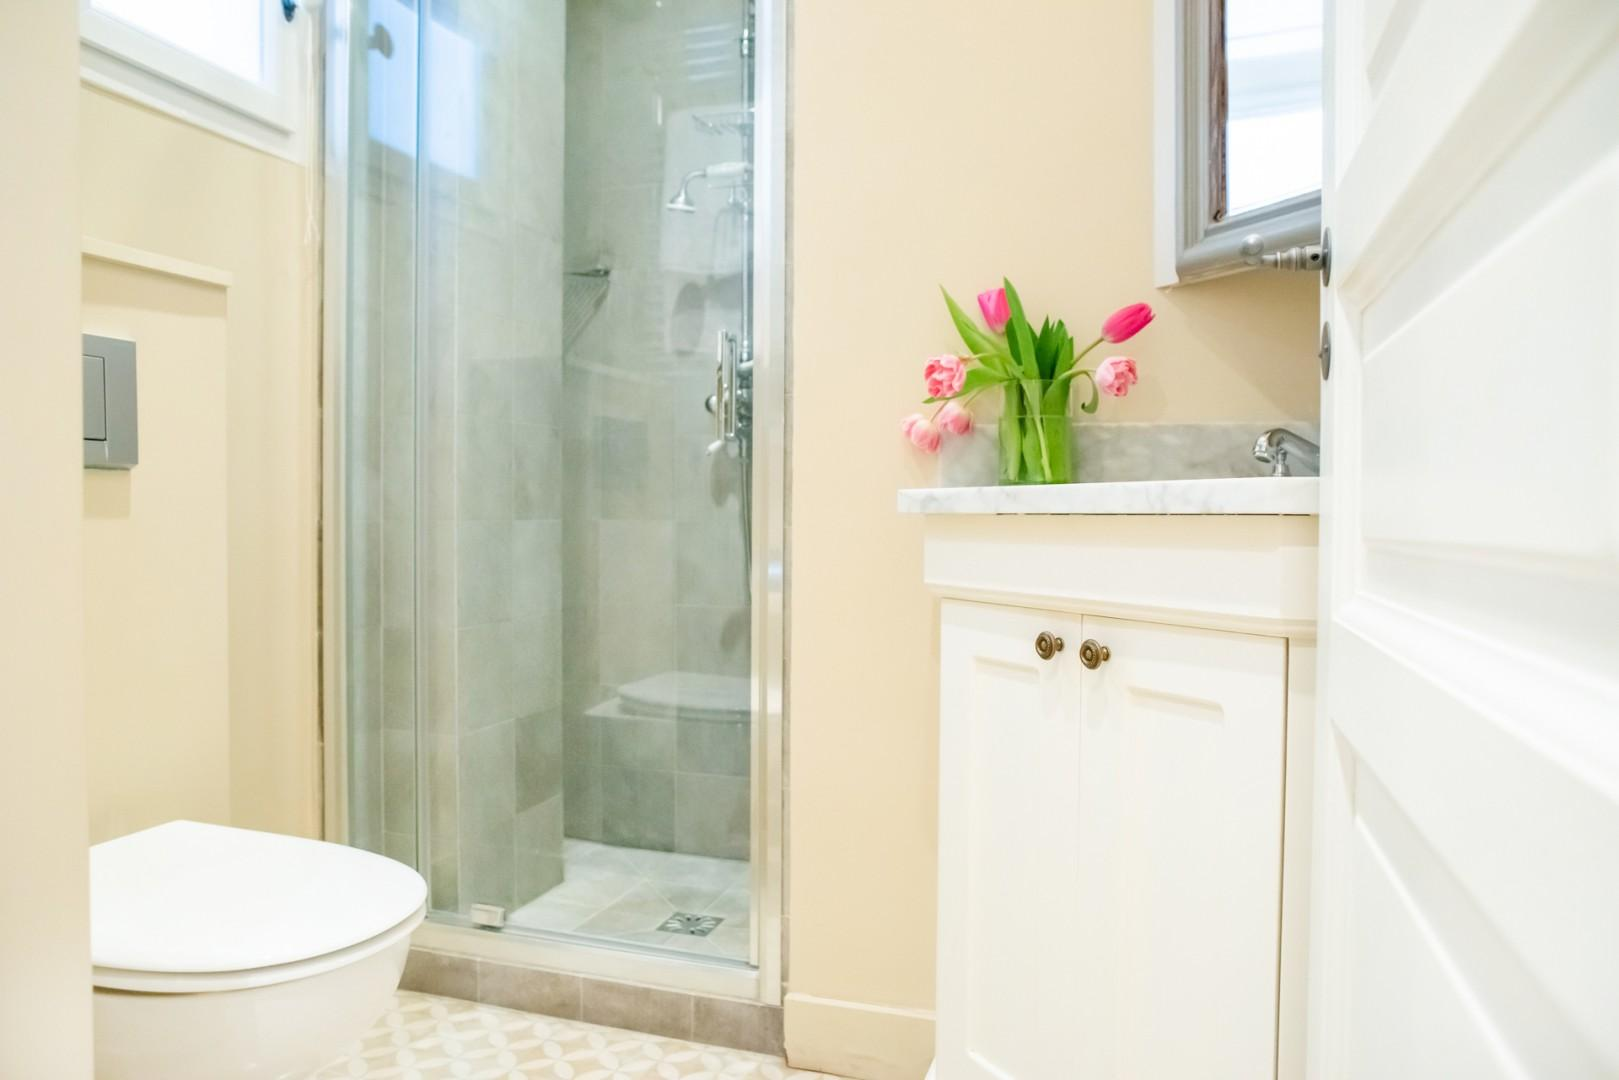 Next to bedroom 2, you'll find a separate bathroom with a shower and heated towel rack.